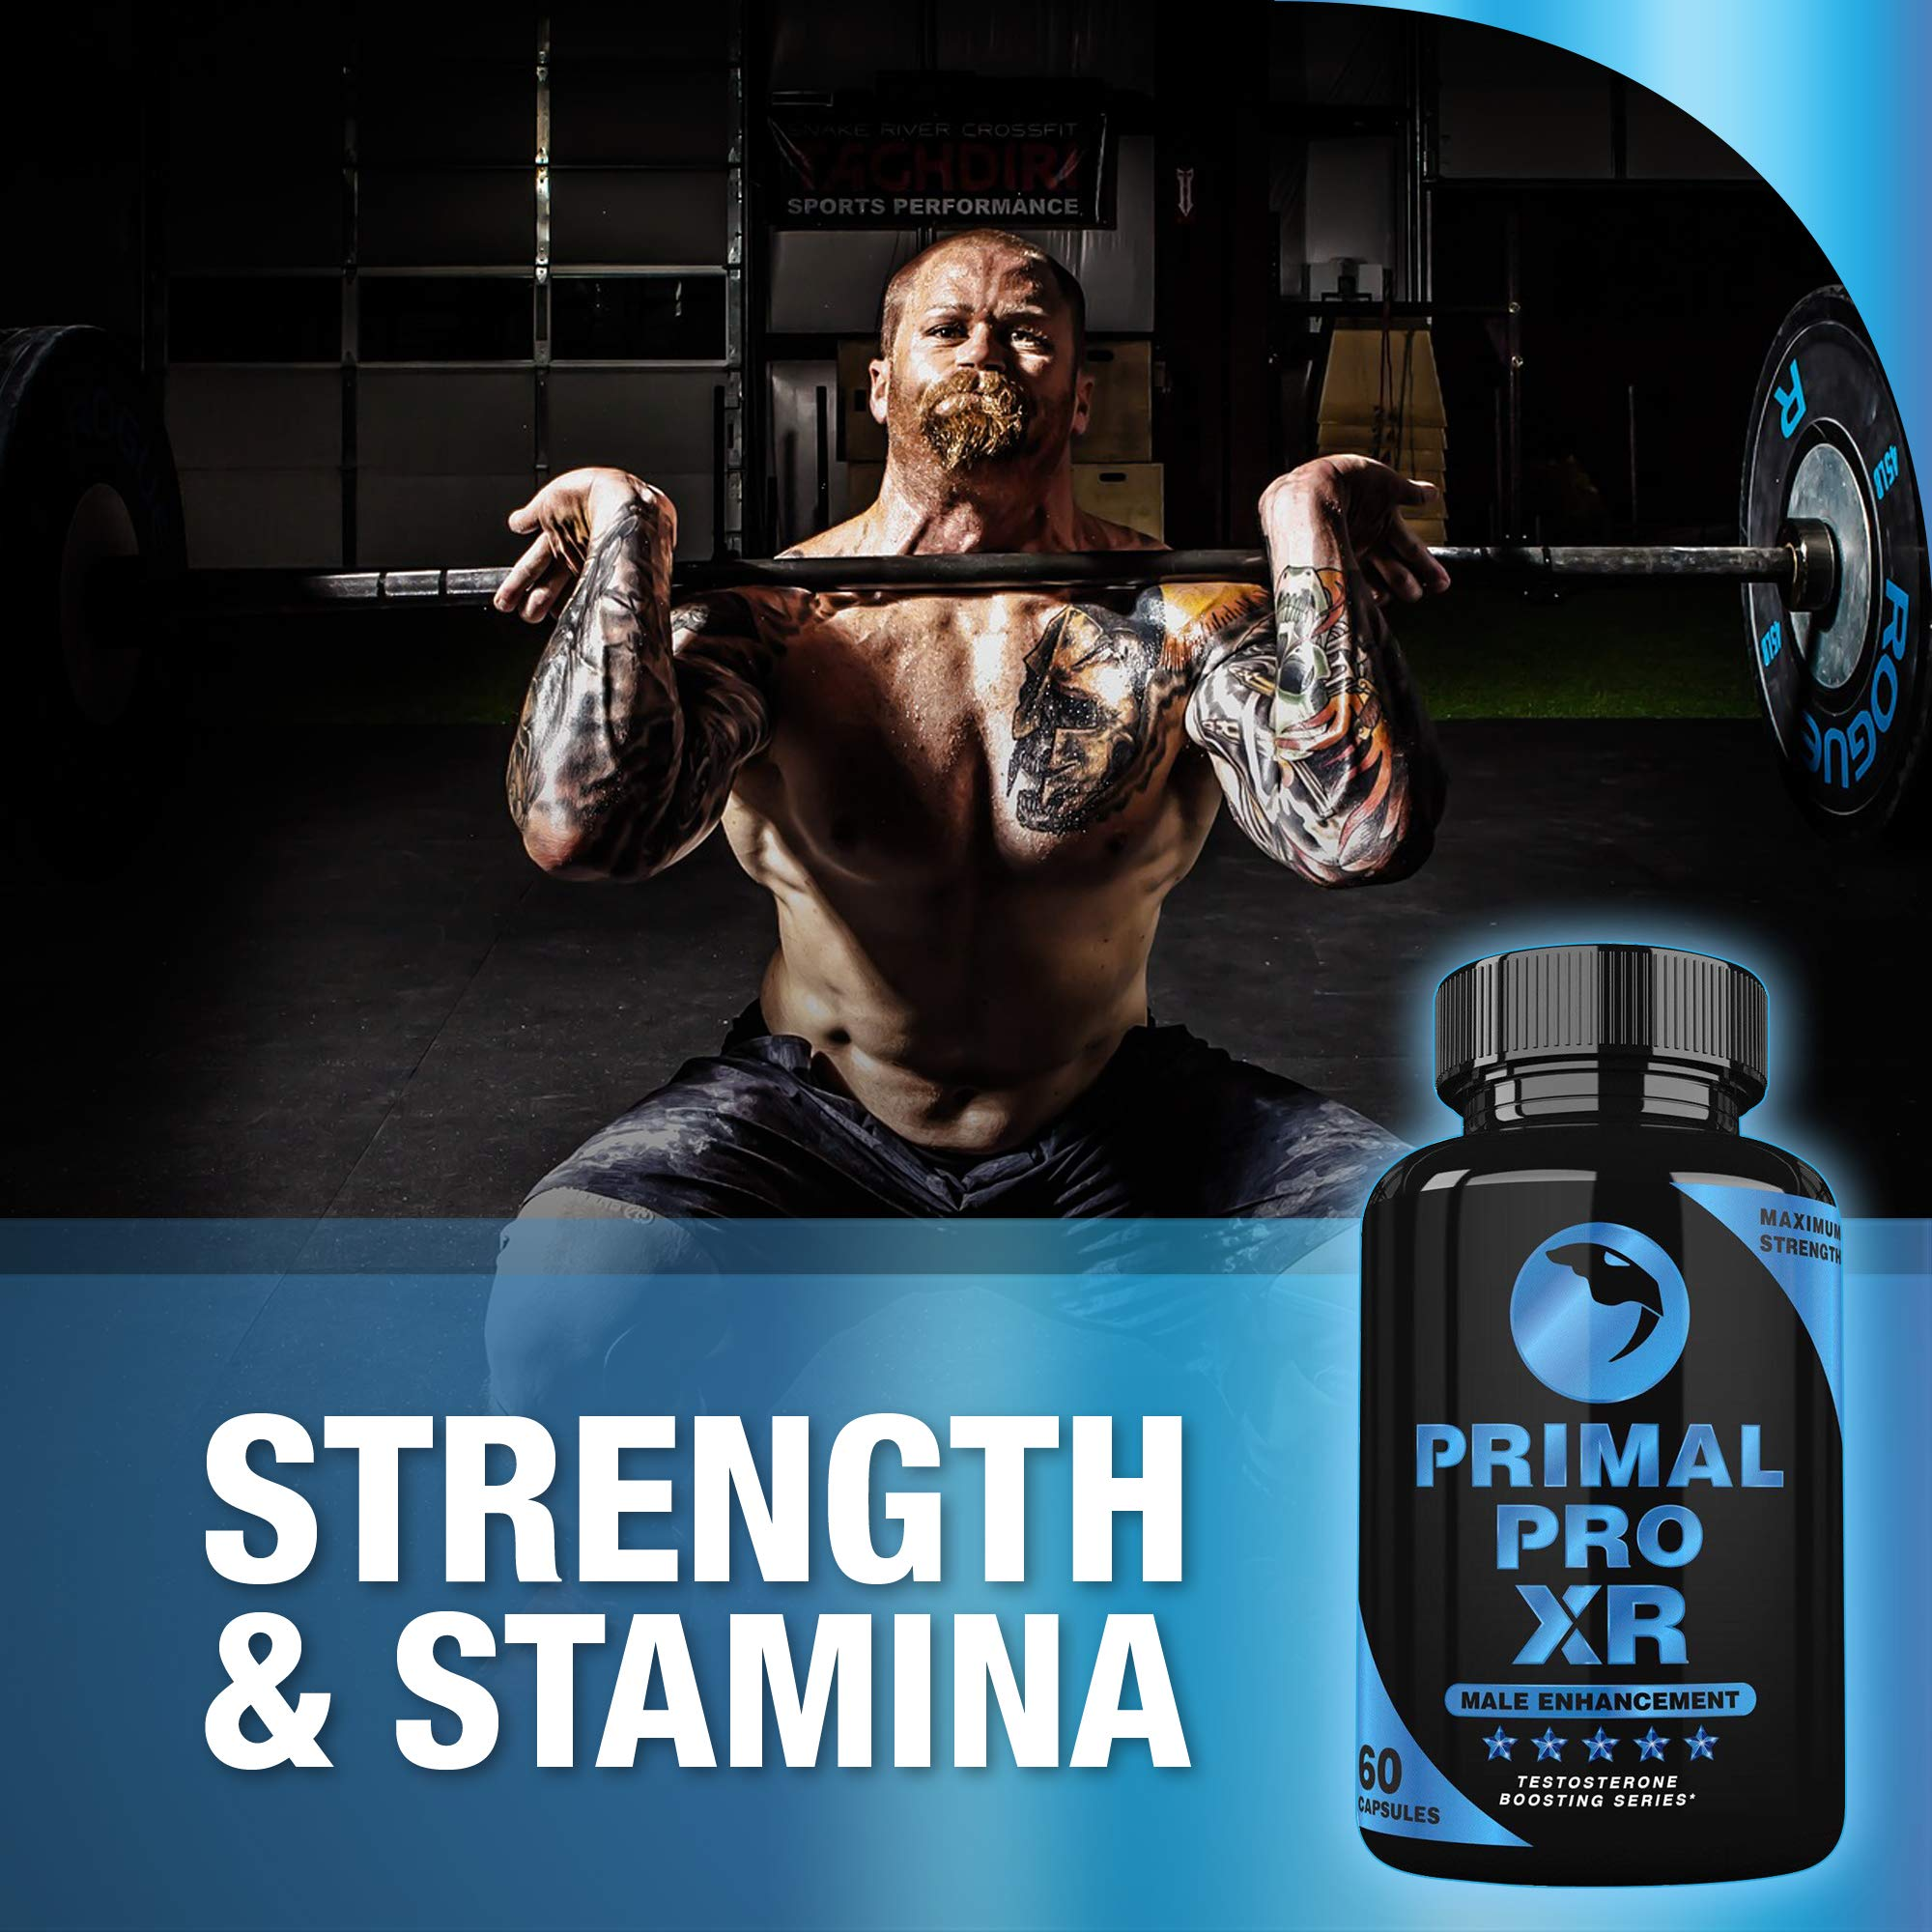 Primal Pro XR - Male Enhancement - Extra Strength Testosterone Booster - Naturally Boost Your Libido, Stamina, Endurance, Strength & Energy for Men & Women - Burn Fat & Build Lean Muscle Mass Today by Primal Pro XR (Image #6)